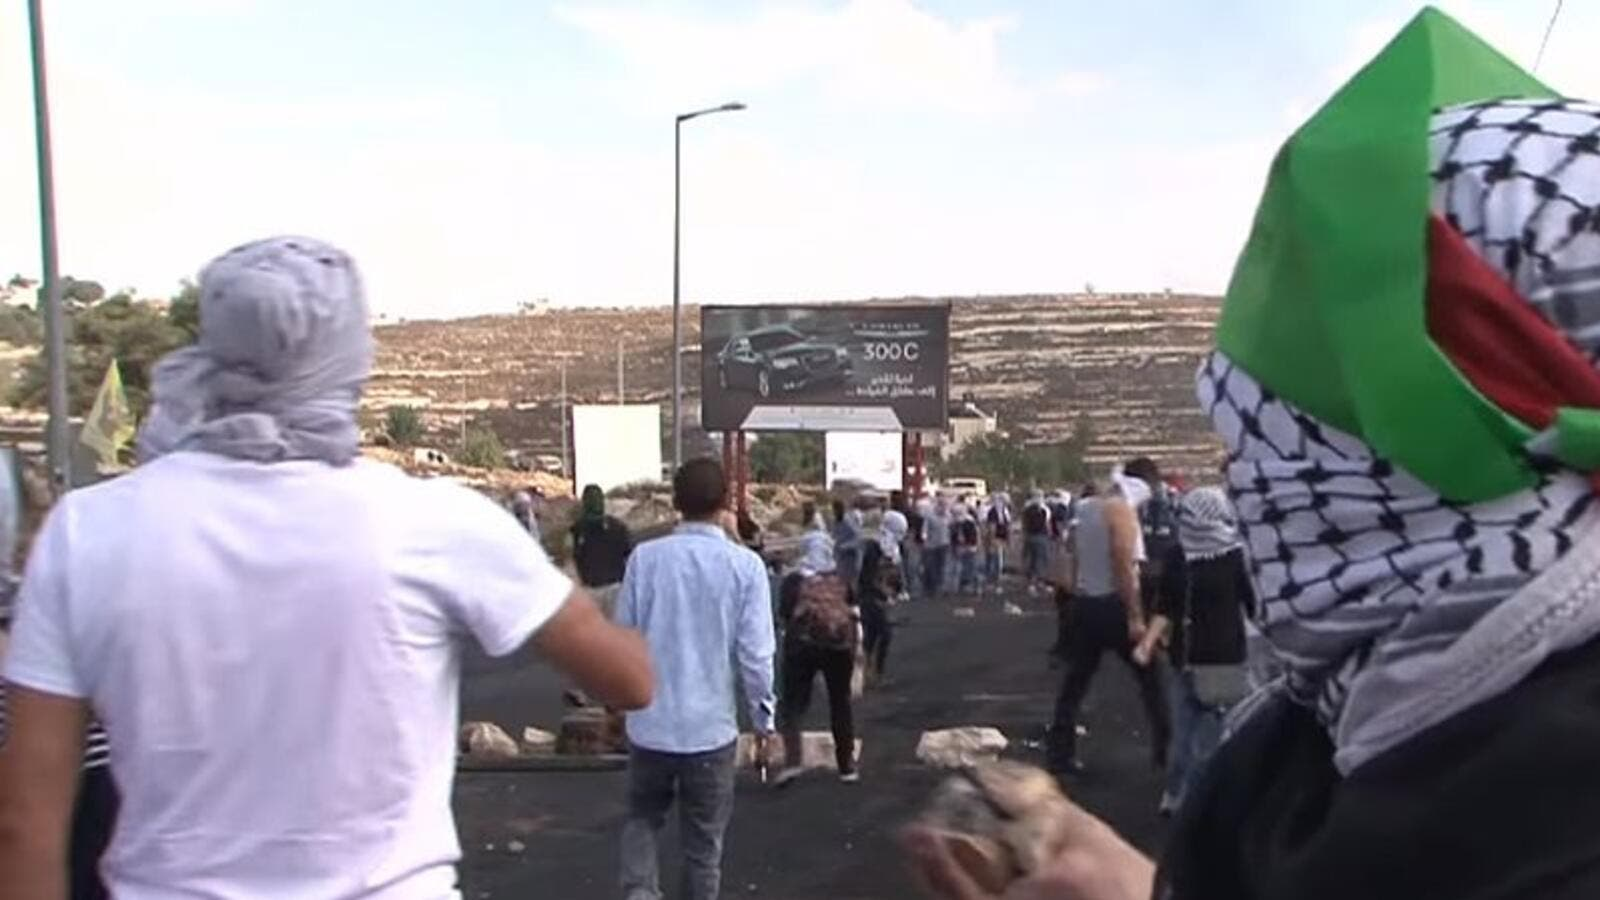 Palestinians protest near Beit El in the West Bank (Wikimedia Commons)